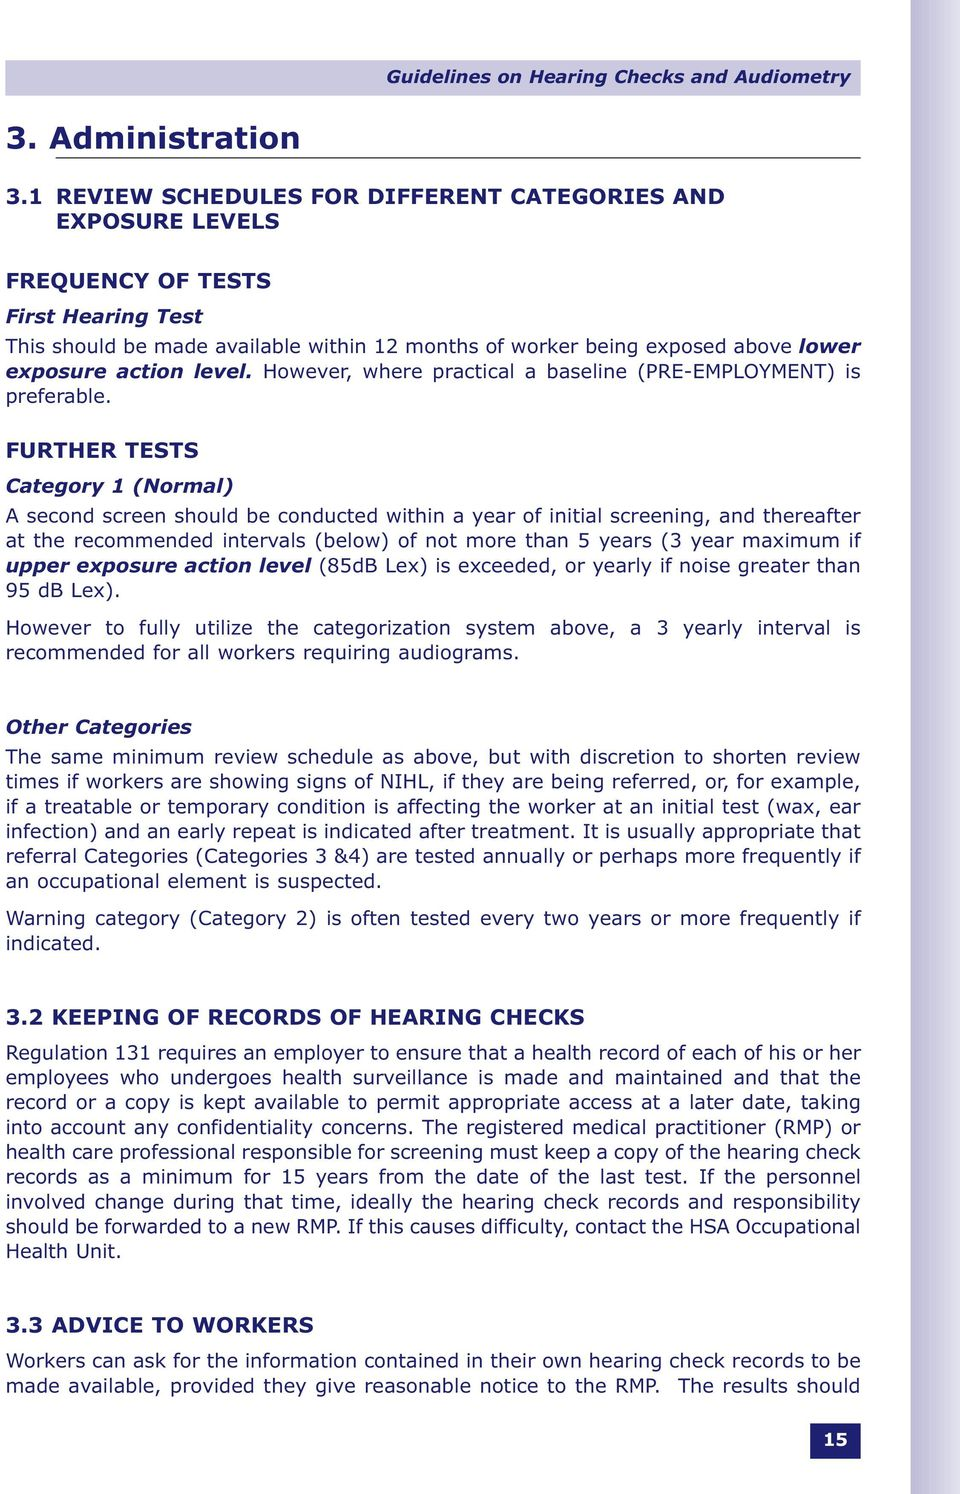 Guidelines on Hearing Checks and Audiometry Under the Safety